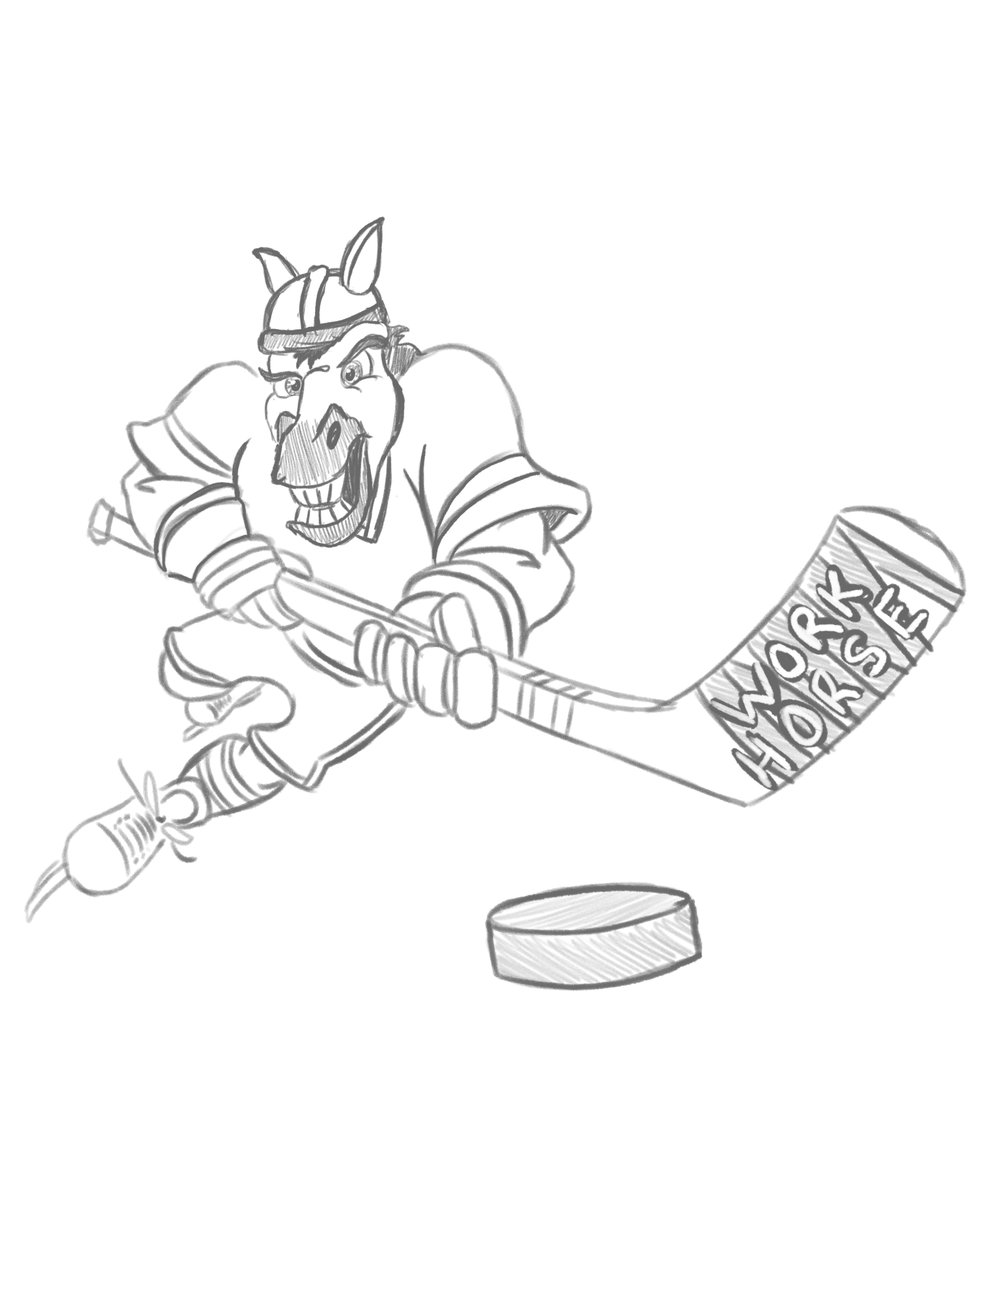 Pencil Sketch - After drawing and redrawing and pulling up countless hockey action shot references I finally had an energy I liked.